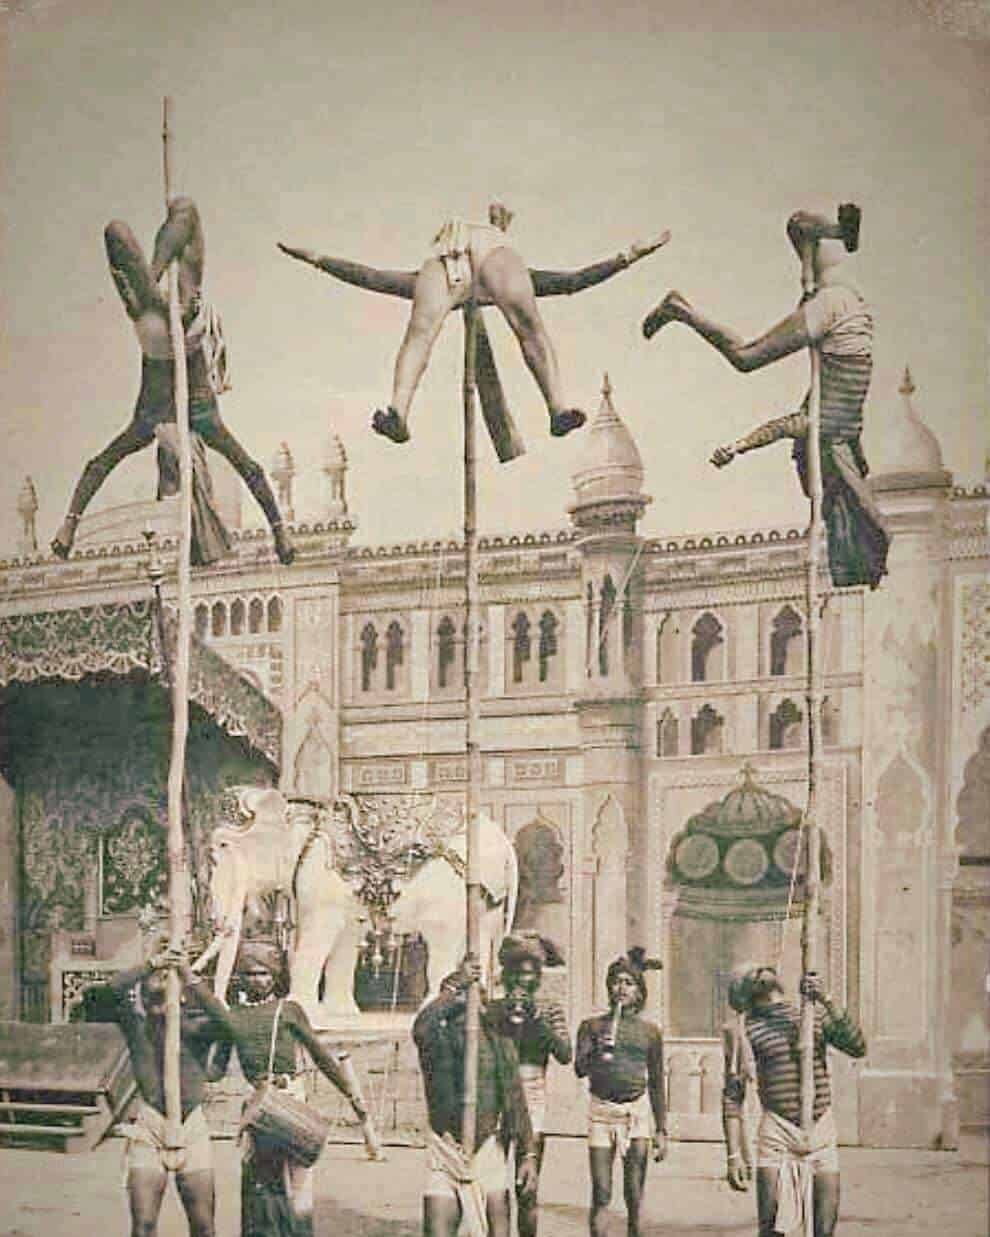 4.Vintage Pics Of Our India